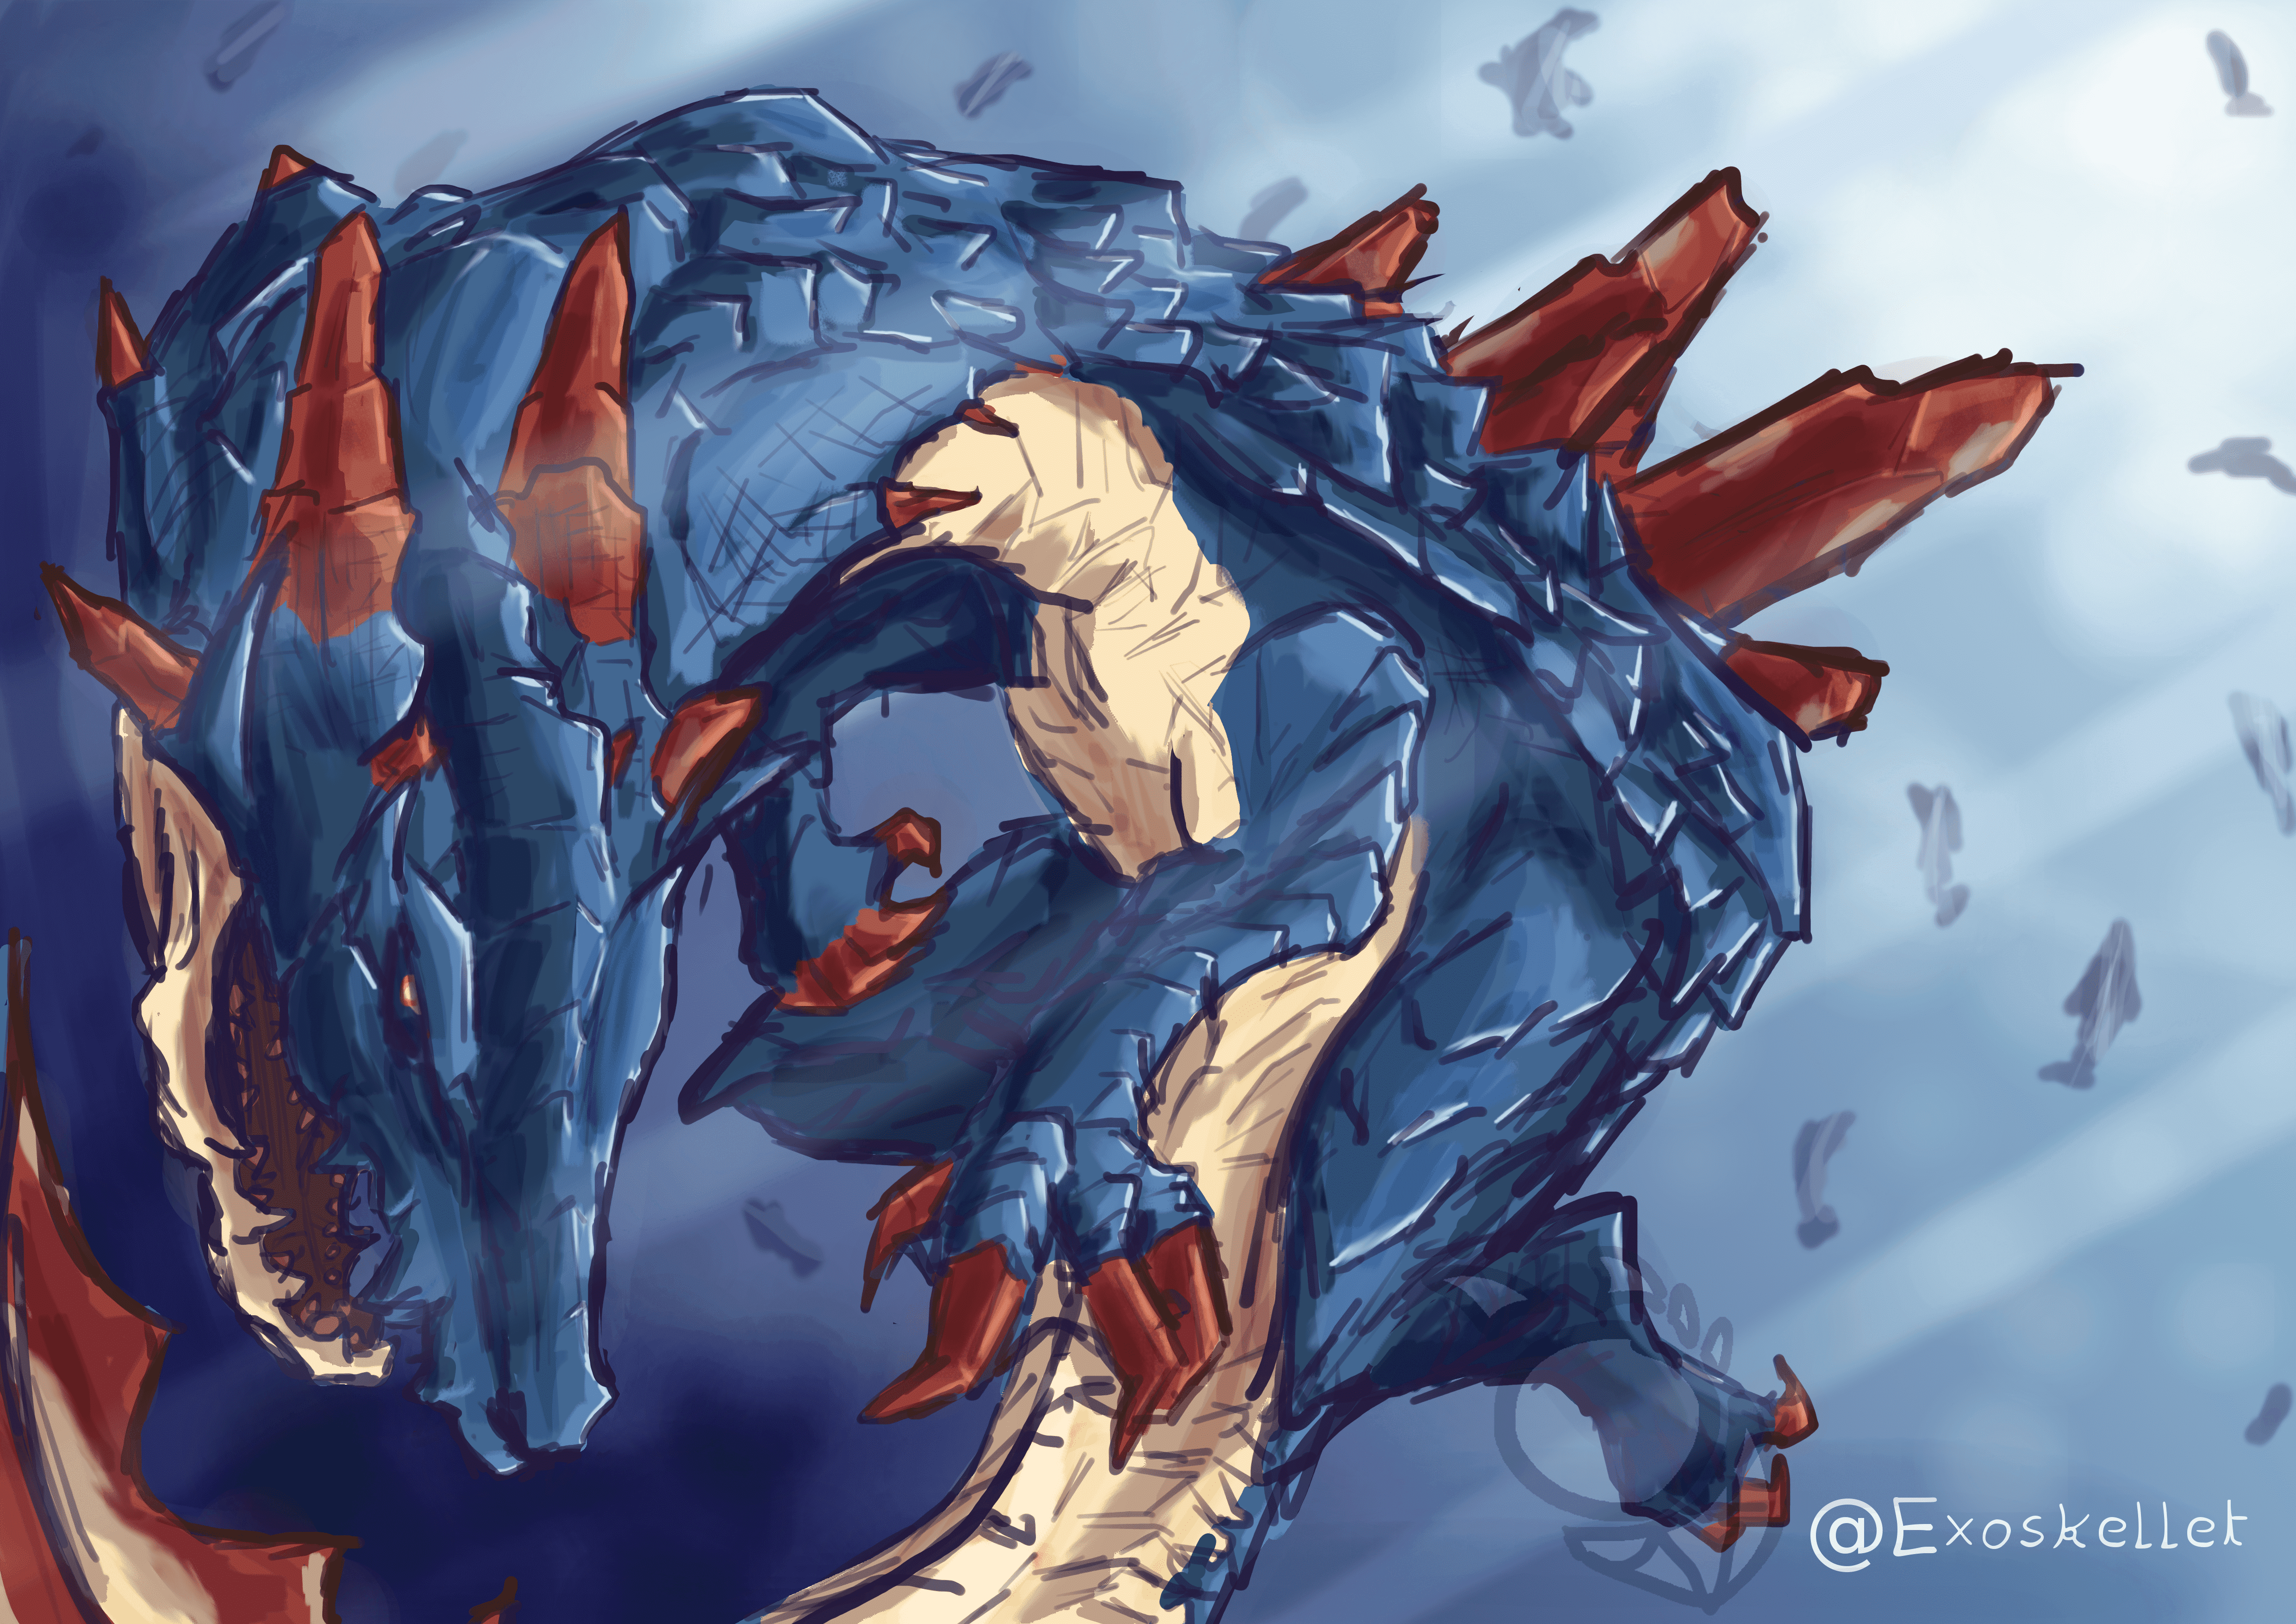 The Lagiacrus By Exoskellet On Newgrounds Commission, electrified awesome croc from monster hunter. newgrounds com